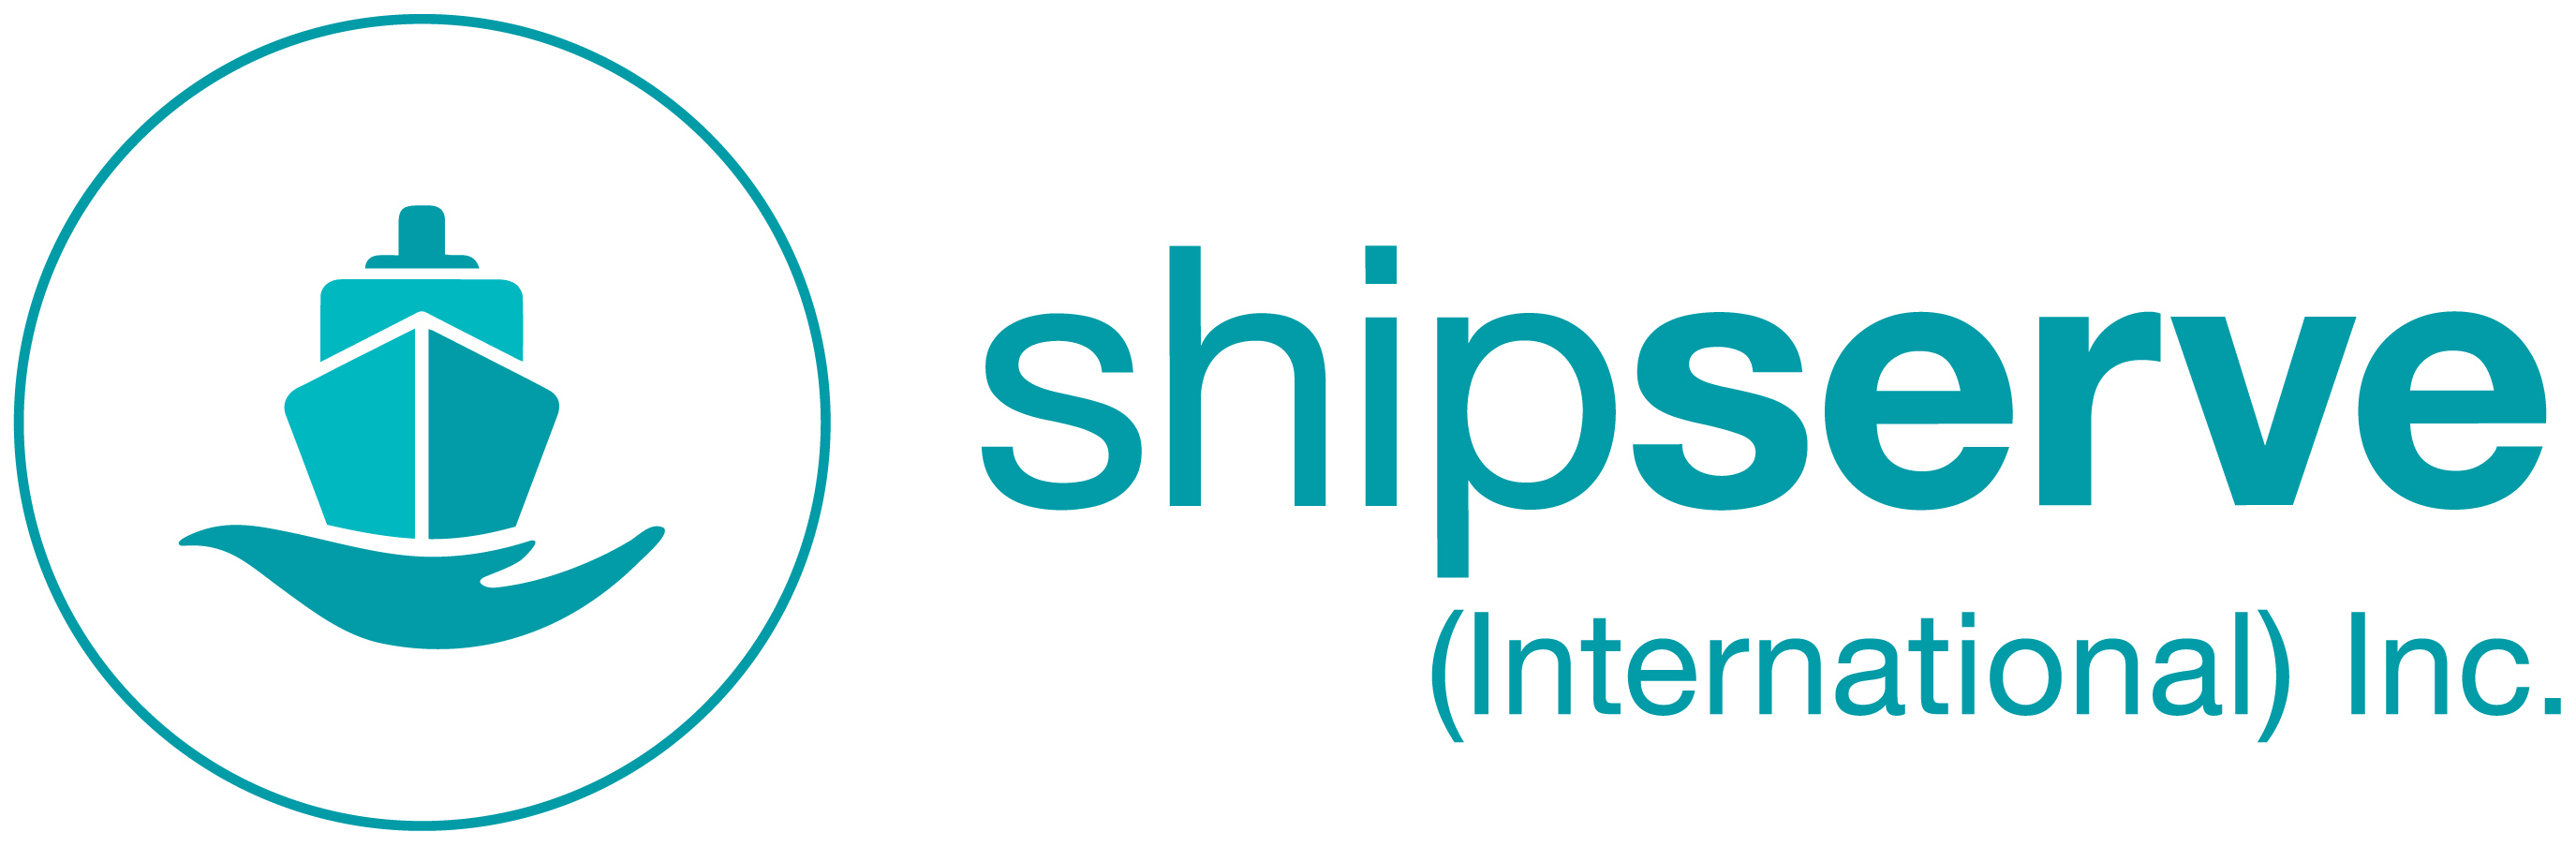 Shipserve (International) Inc